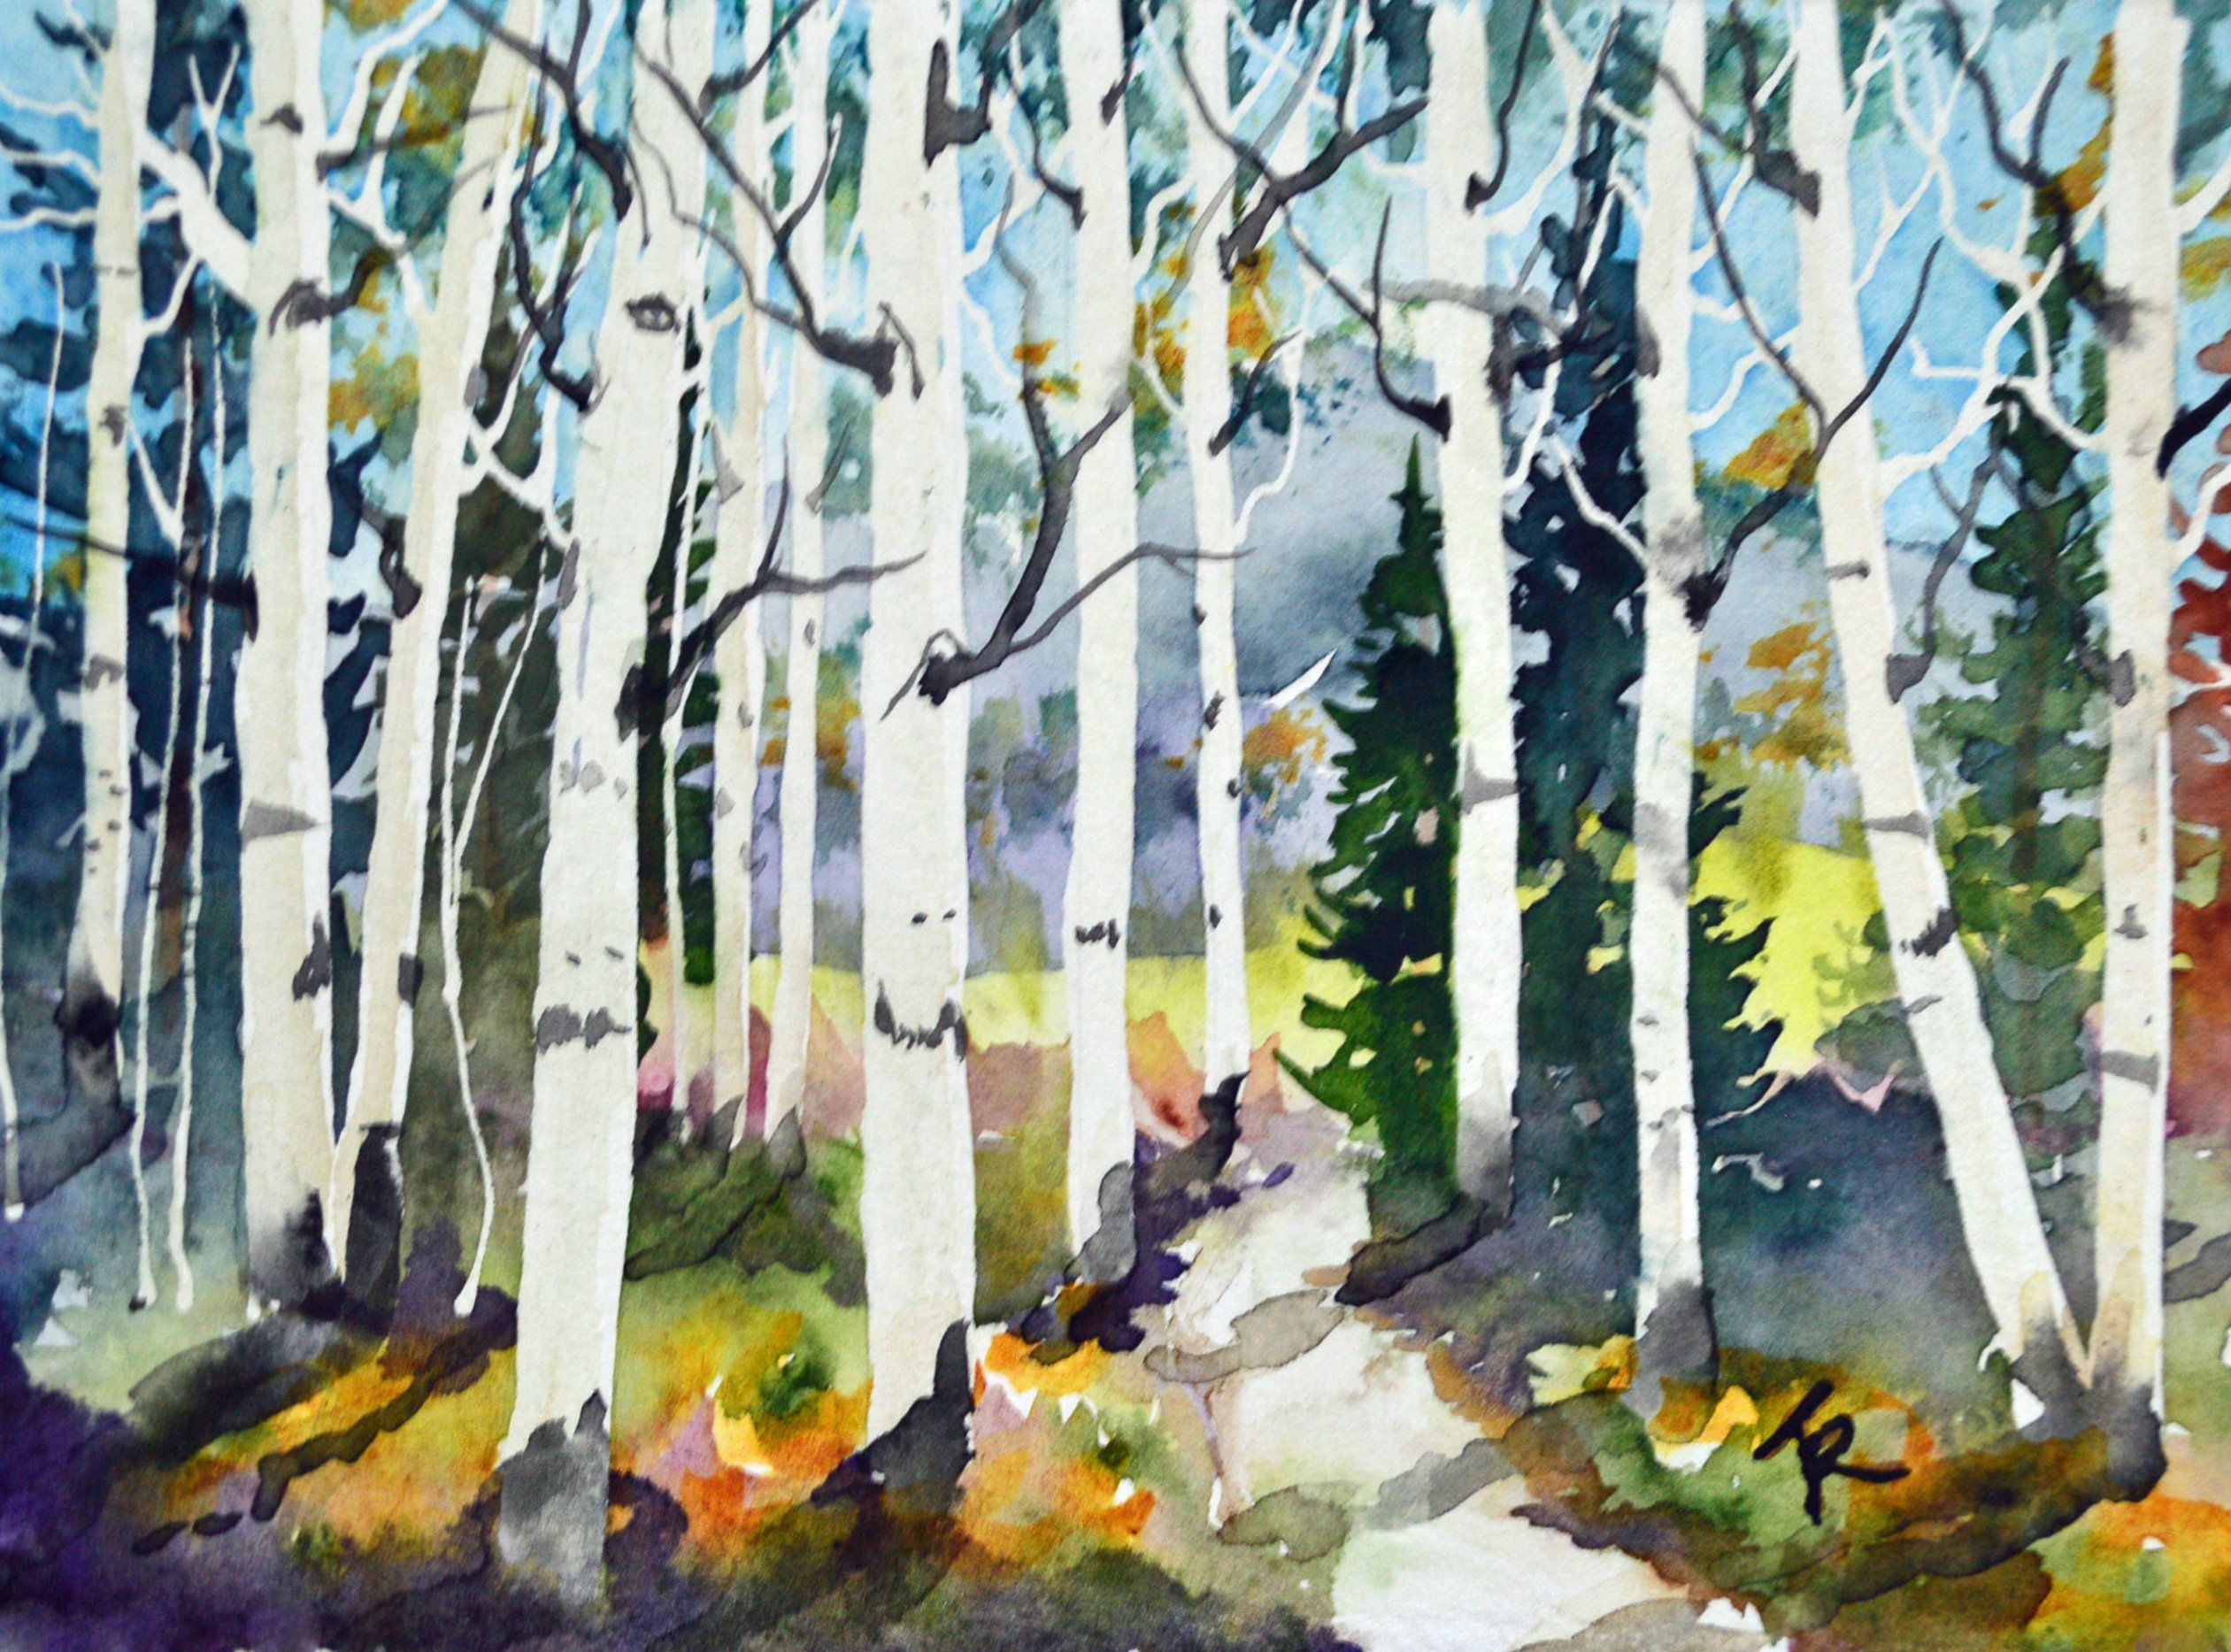 Watercolor Painting Original Of An Aspen Tree Forest In The Fall